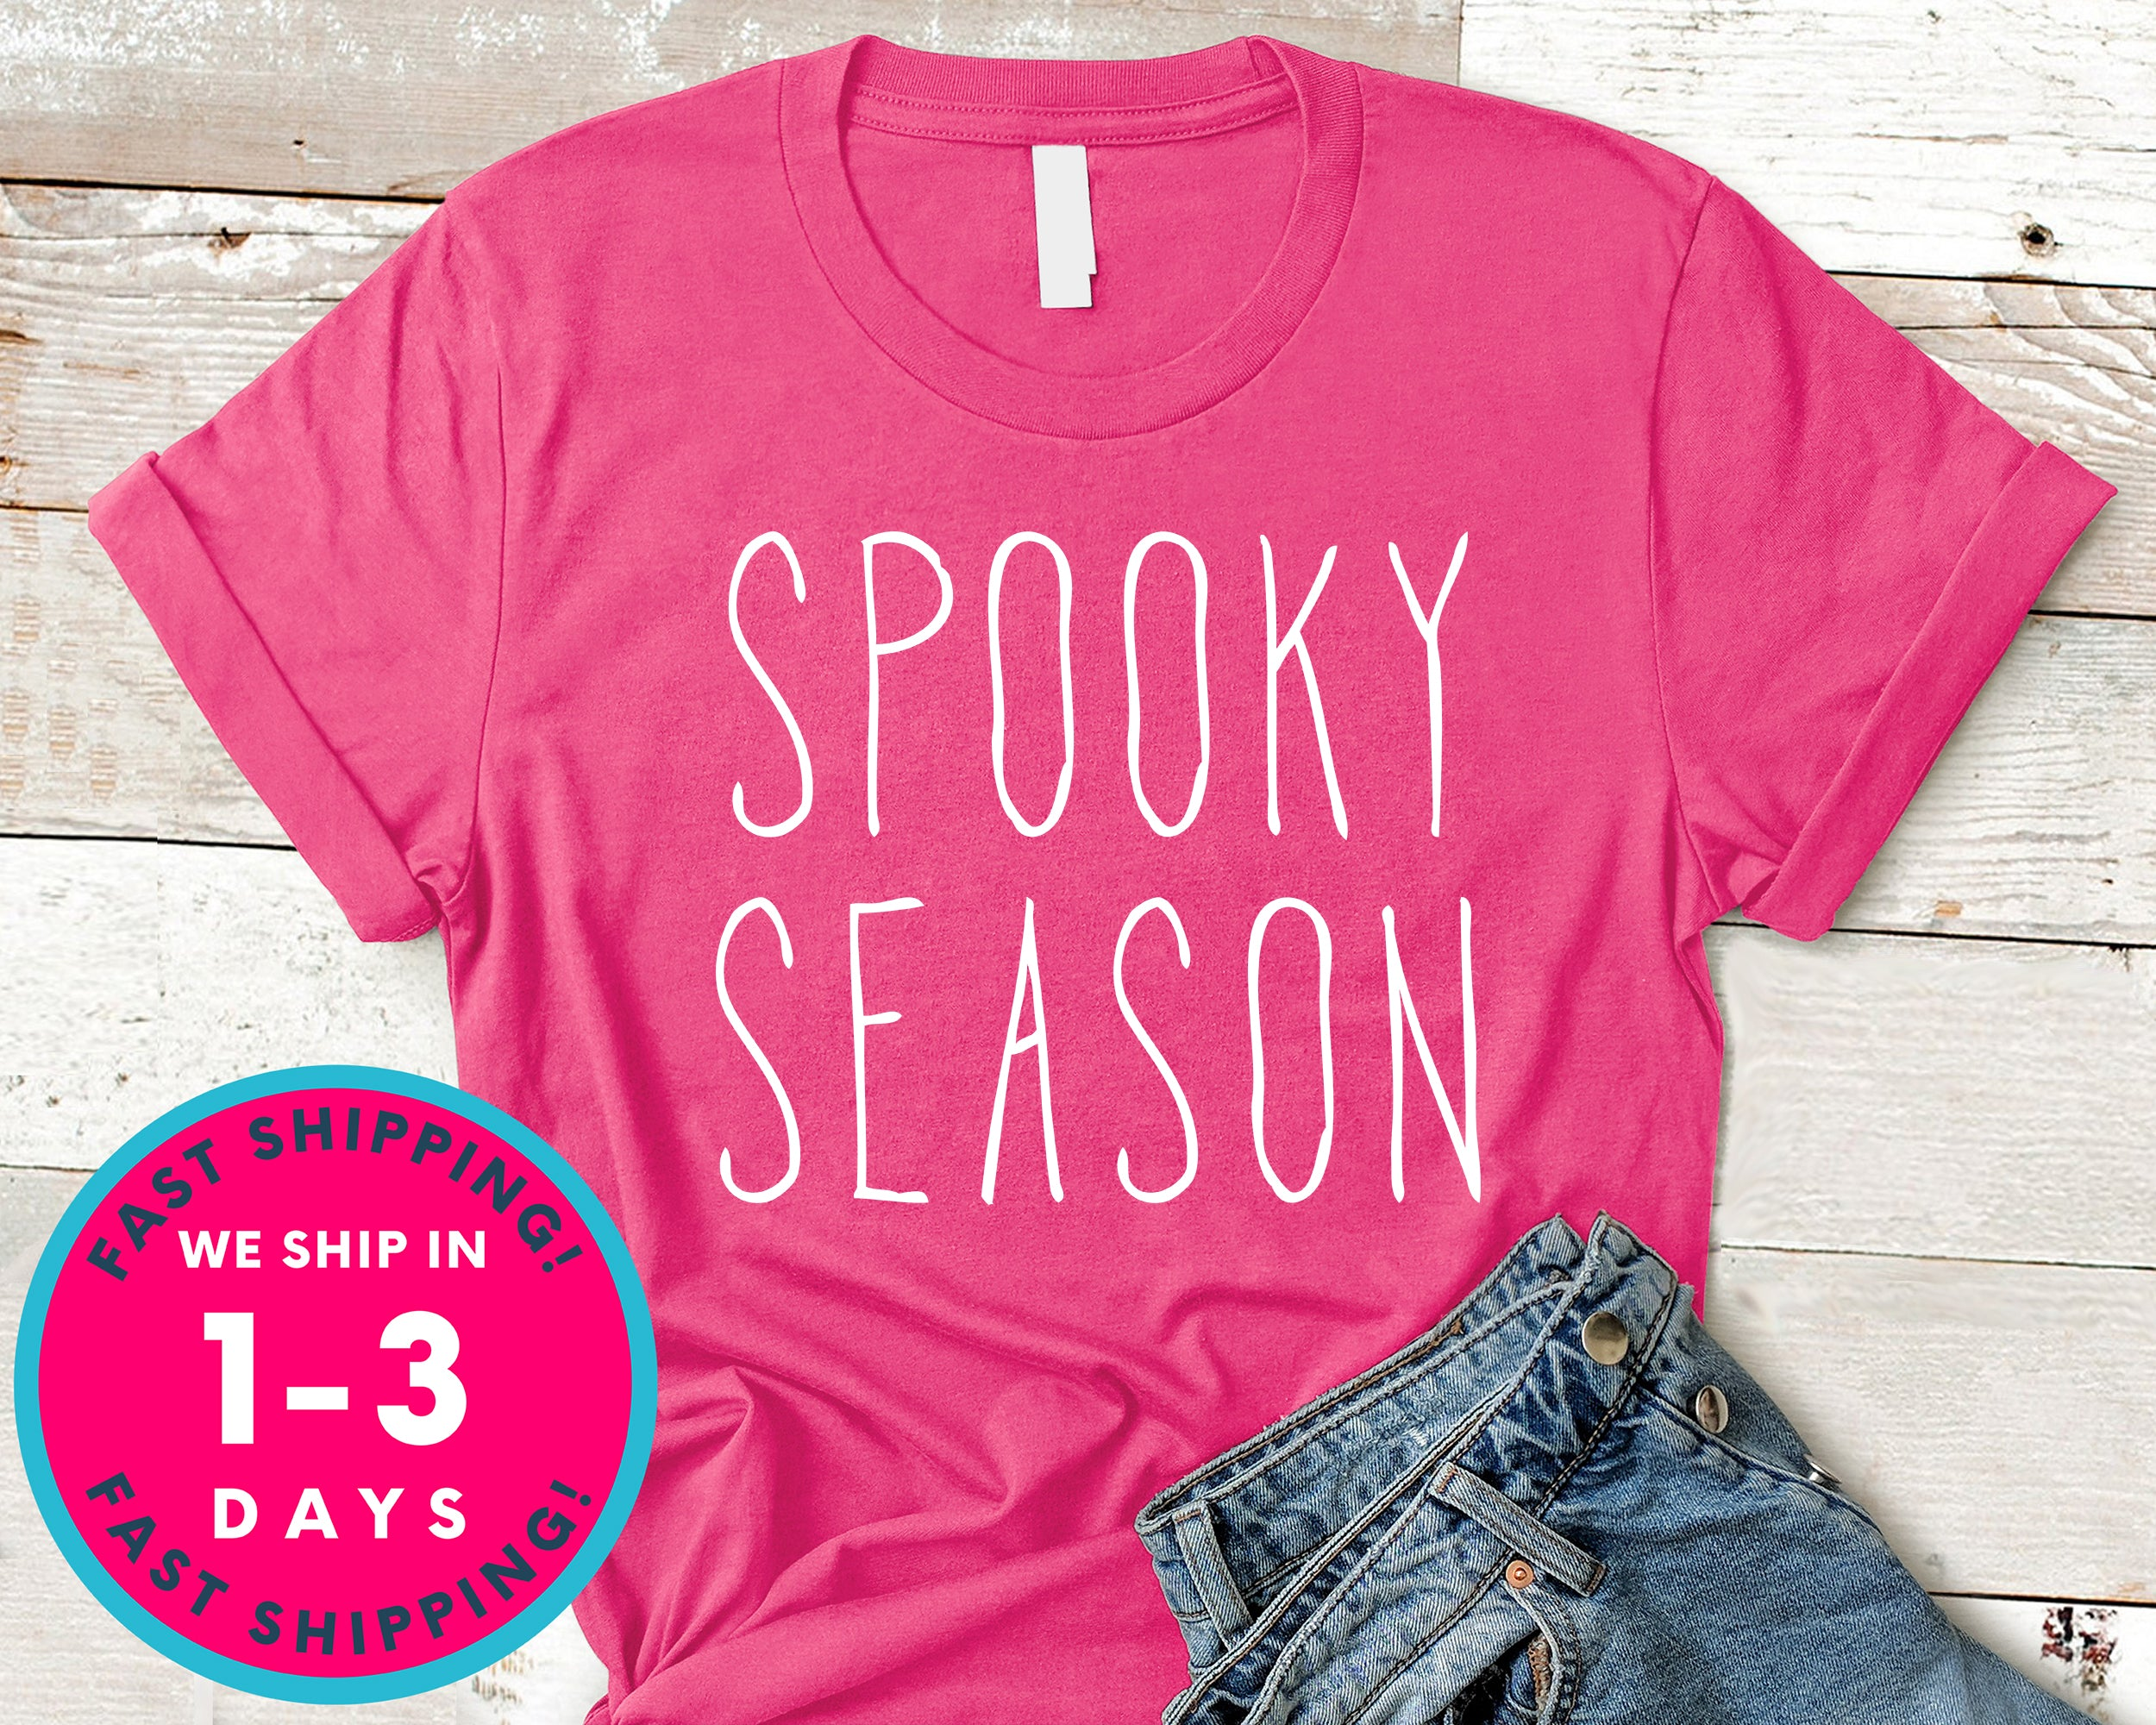 Spooky Season T-Shirt - Halloween Horror Scary Shirt